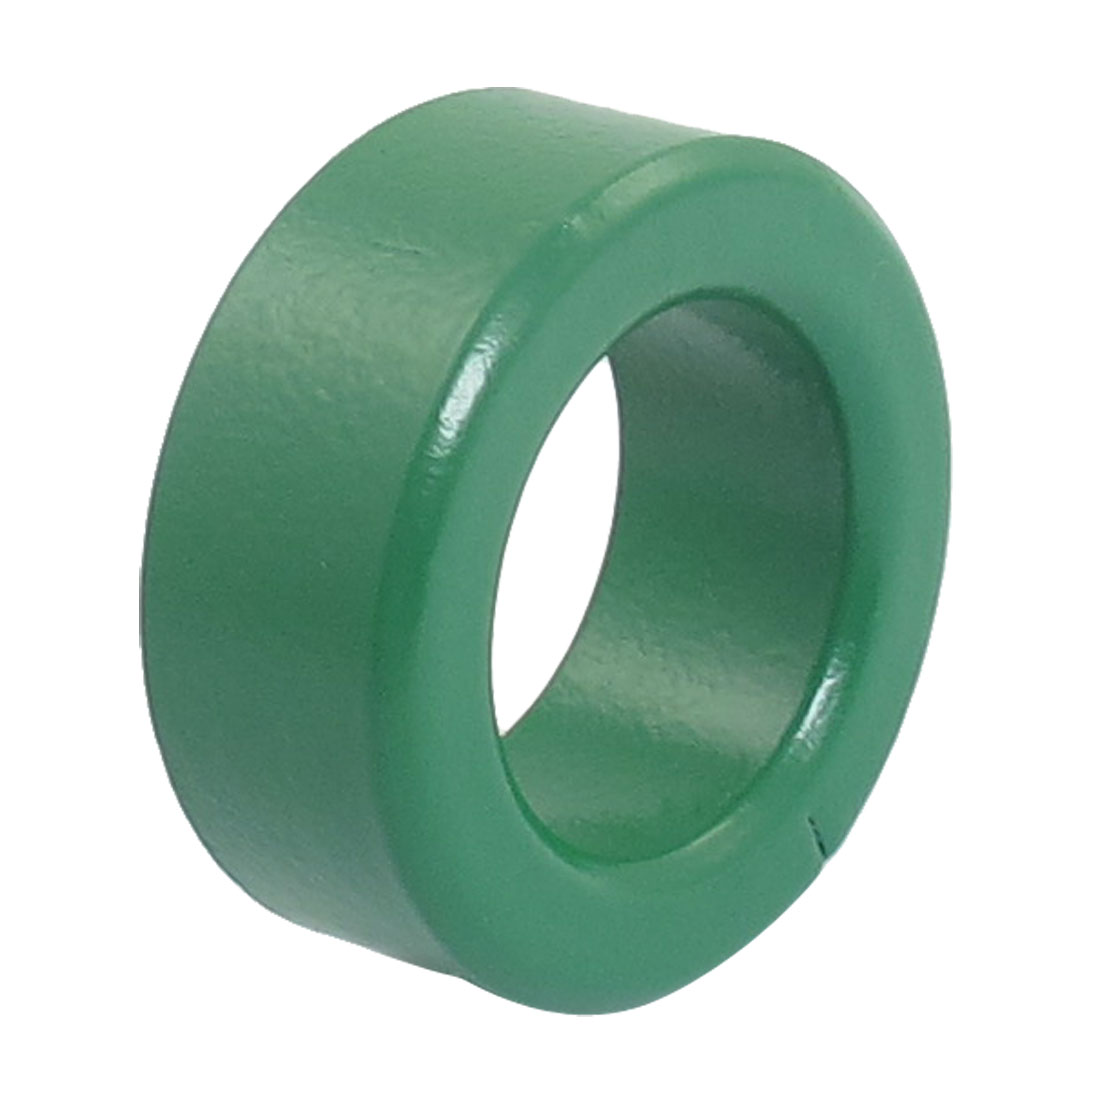 UXCELL 36Mm Outside Dia Green Iron Inductor Coils Toroid Ferrite Cores(China (Mainland))